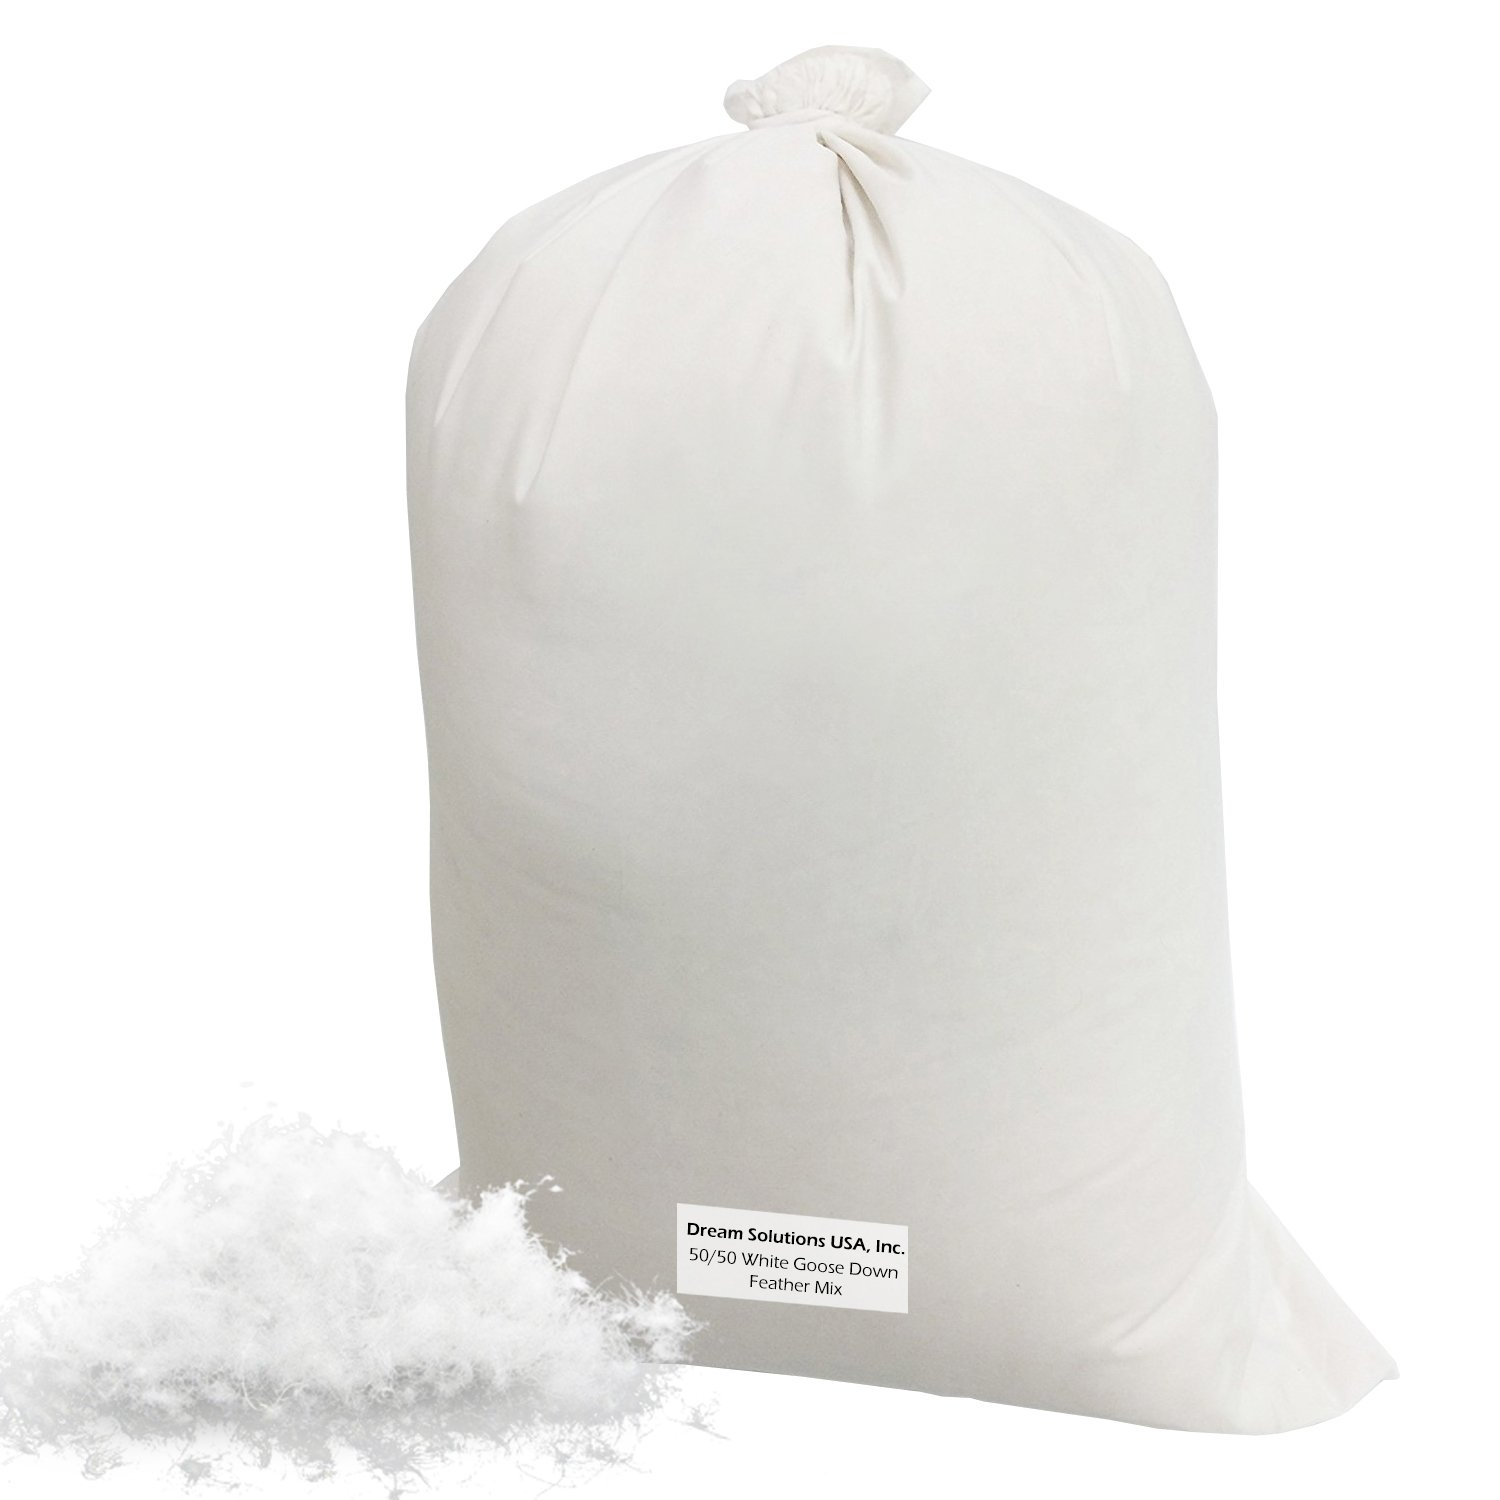 Dream Solutions USA Brand Bulk Goose Down Pillow Feathers - Most popular Mix 50/50 White (2 LB) by Dream Solutions